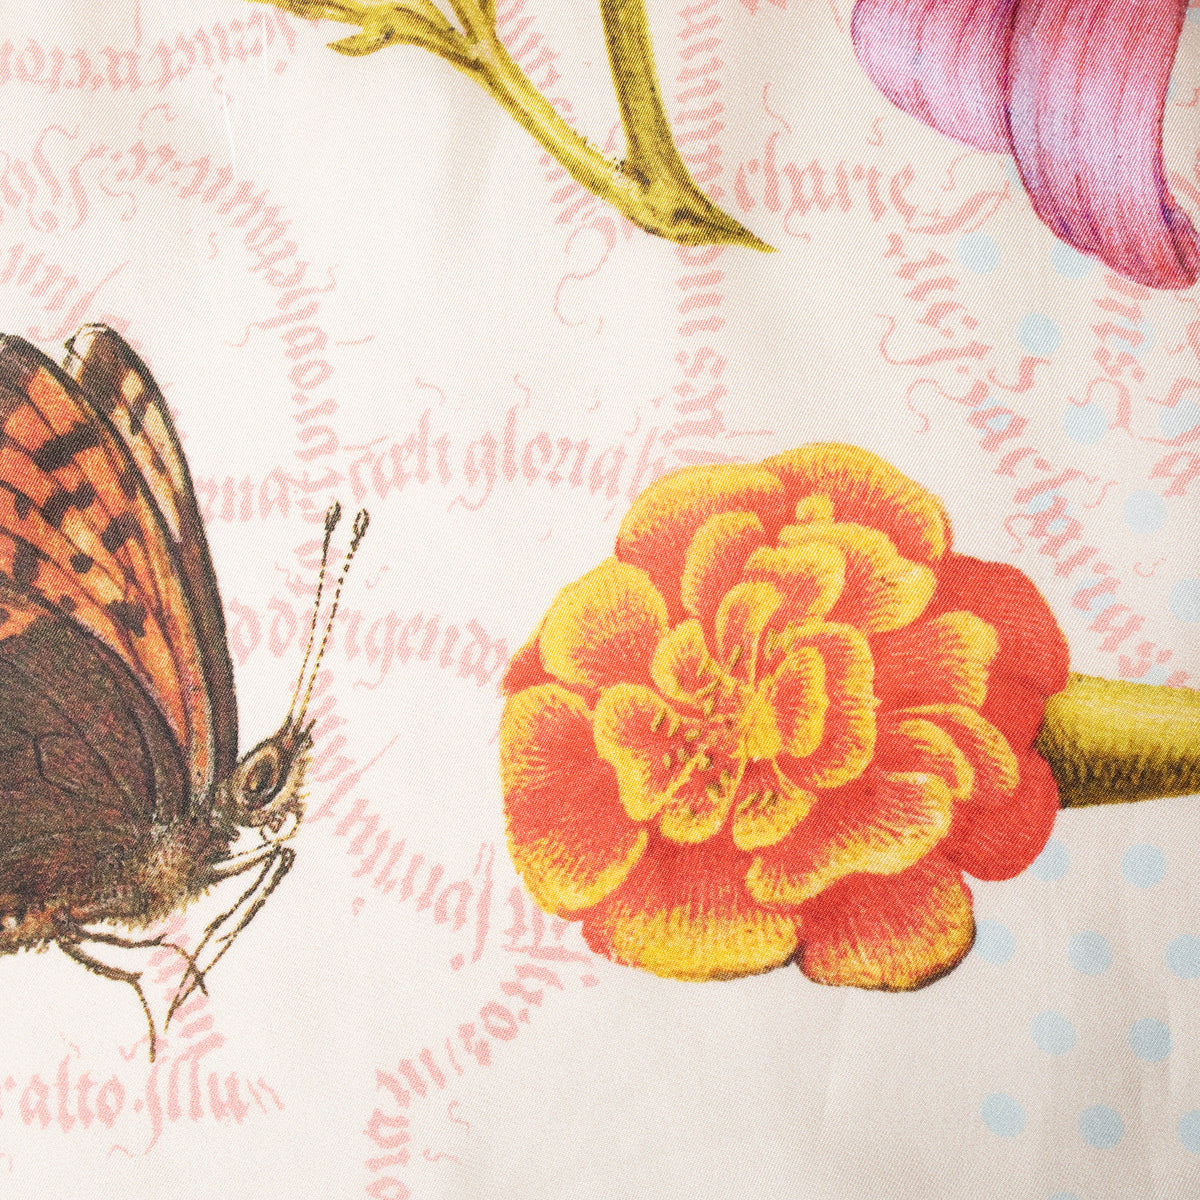 Botanical Illuminations Silk Scarf detail of flowers and butterfly | Getty Store